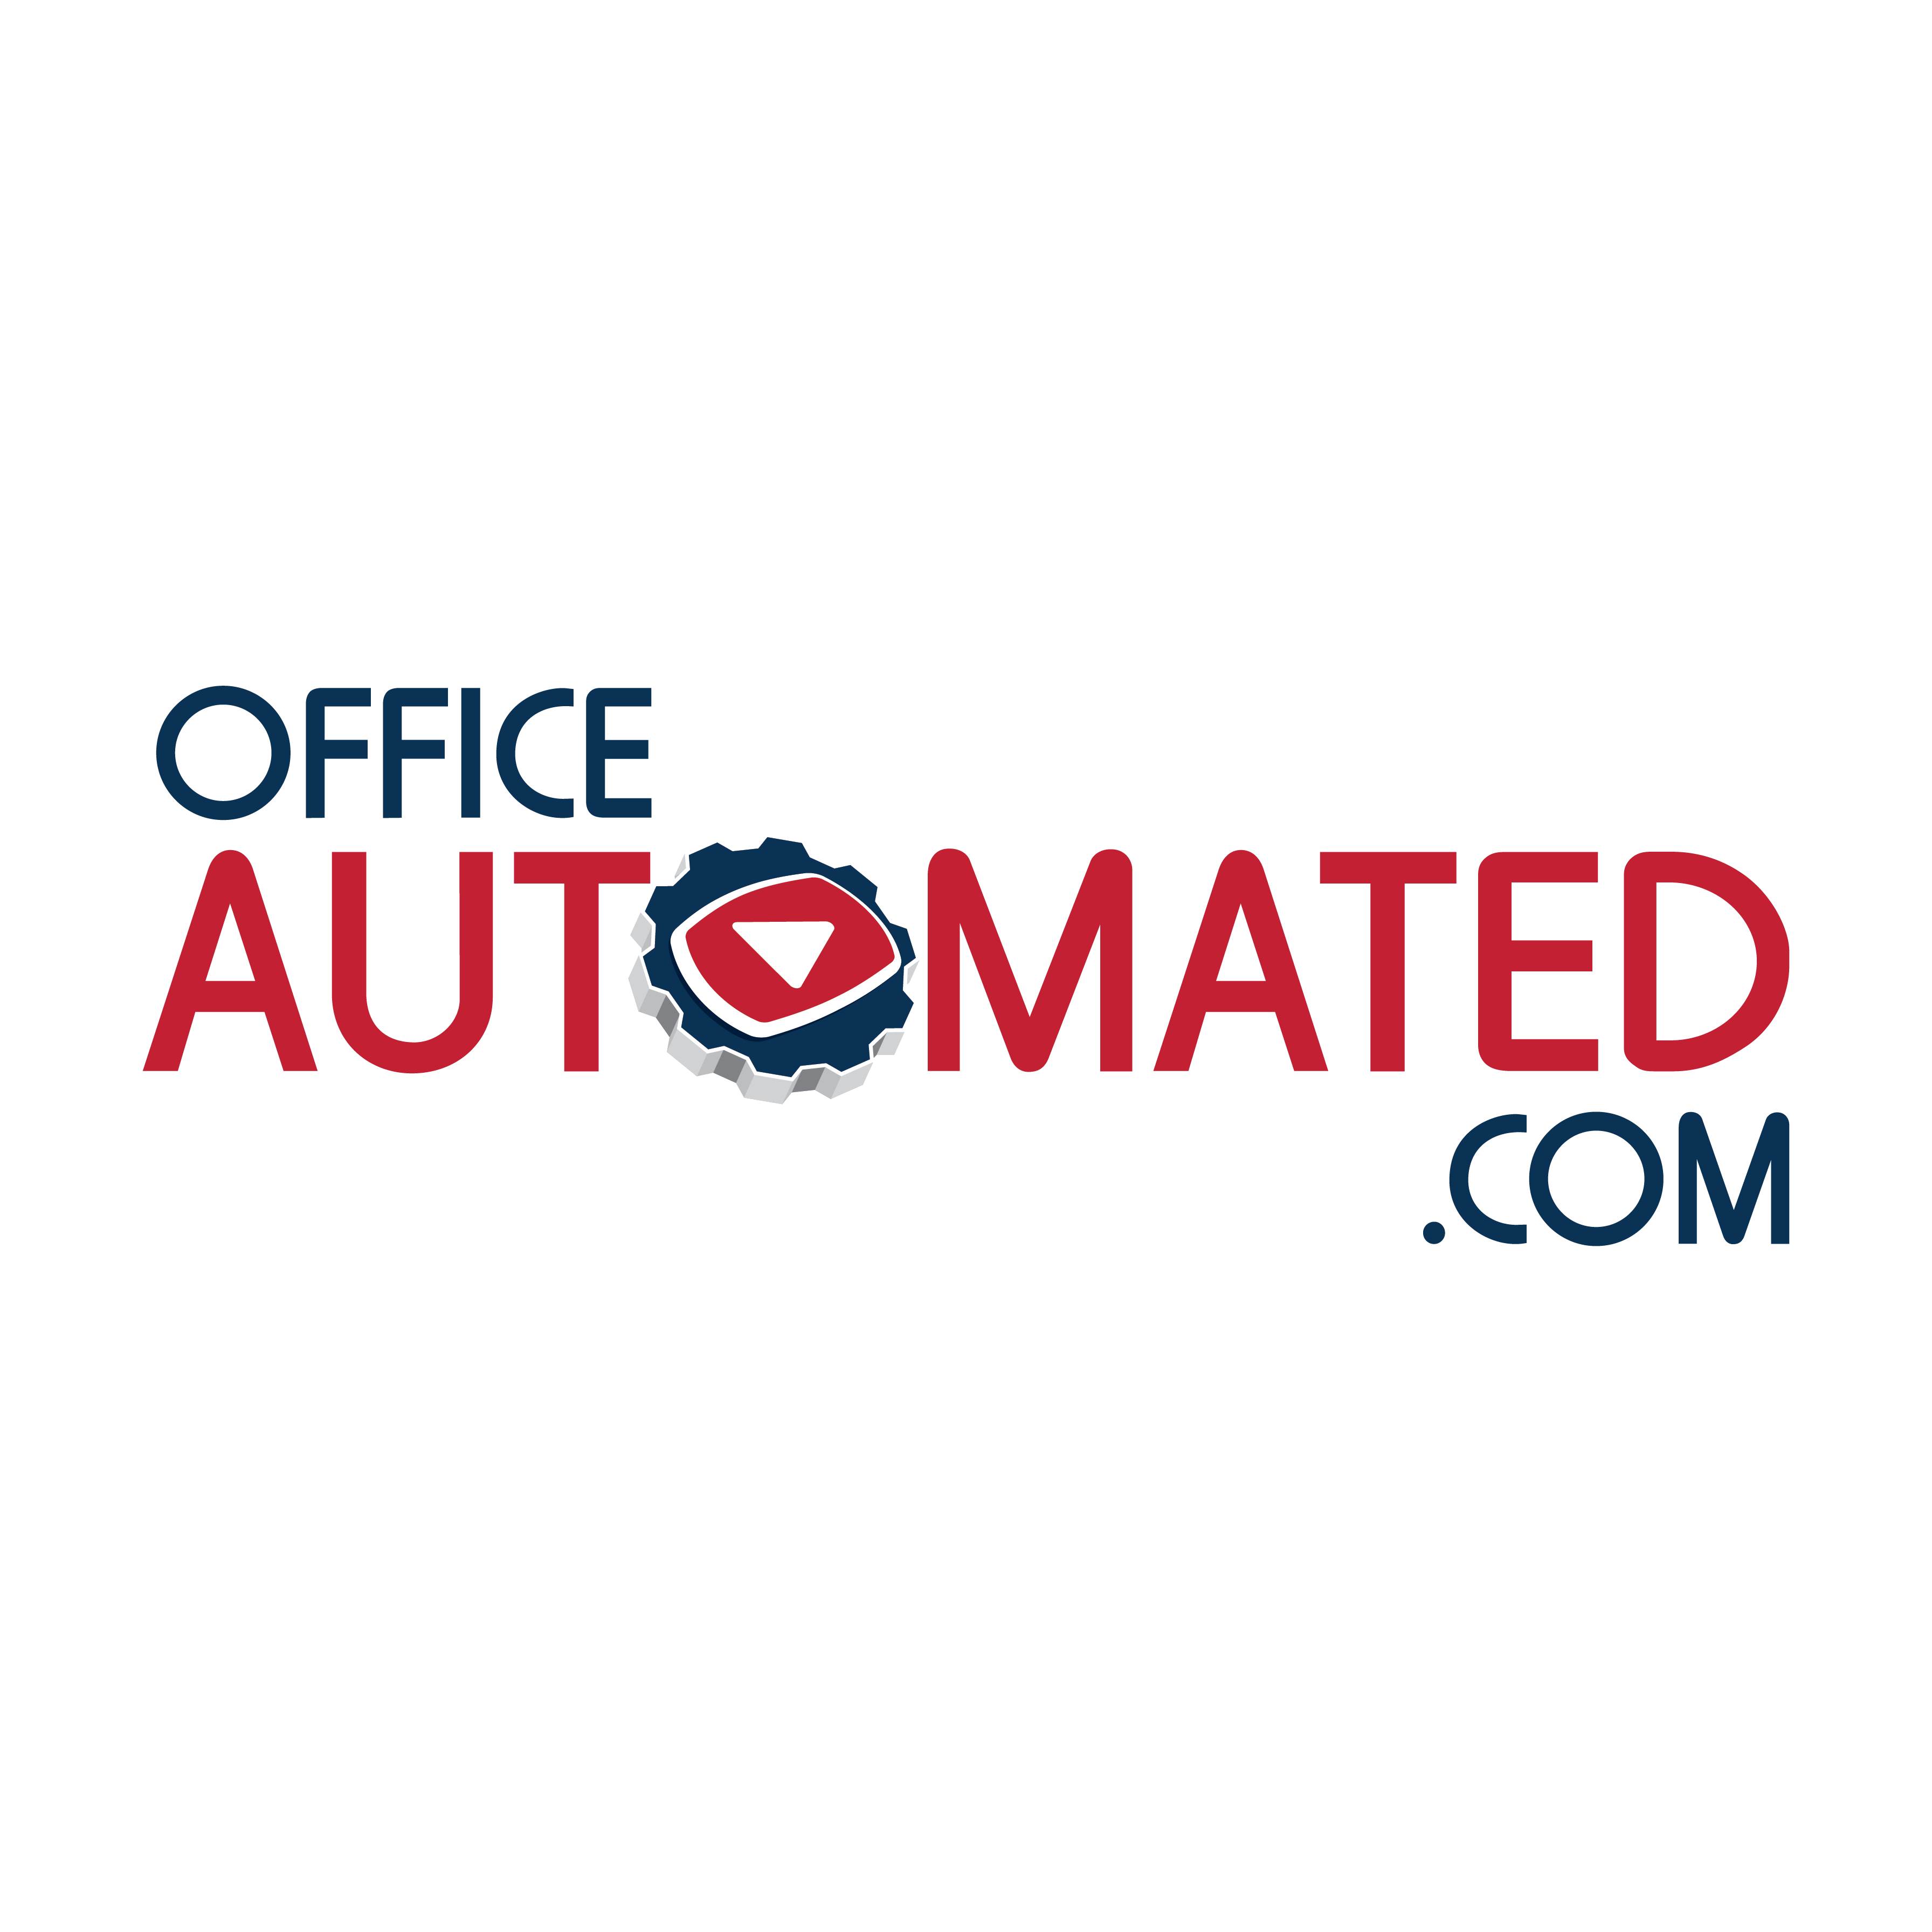 OfficeAutomated.com